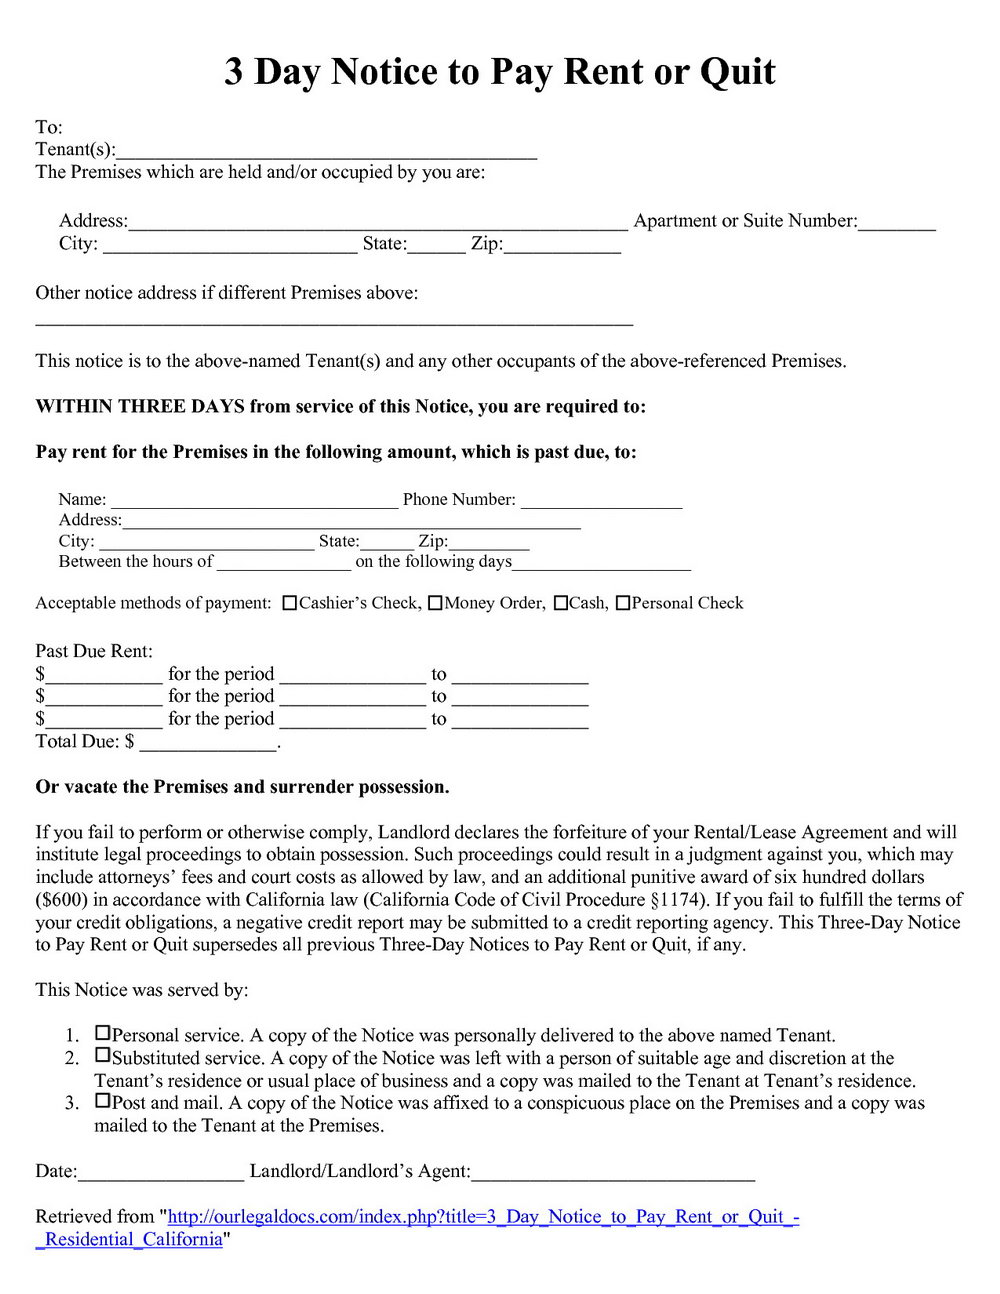 3 Day Notice To Pay Or Quit California Form